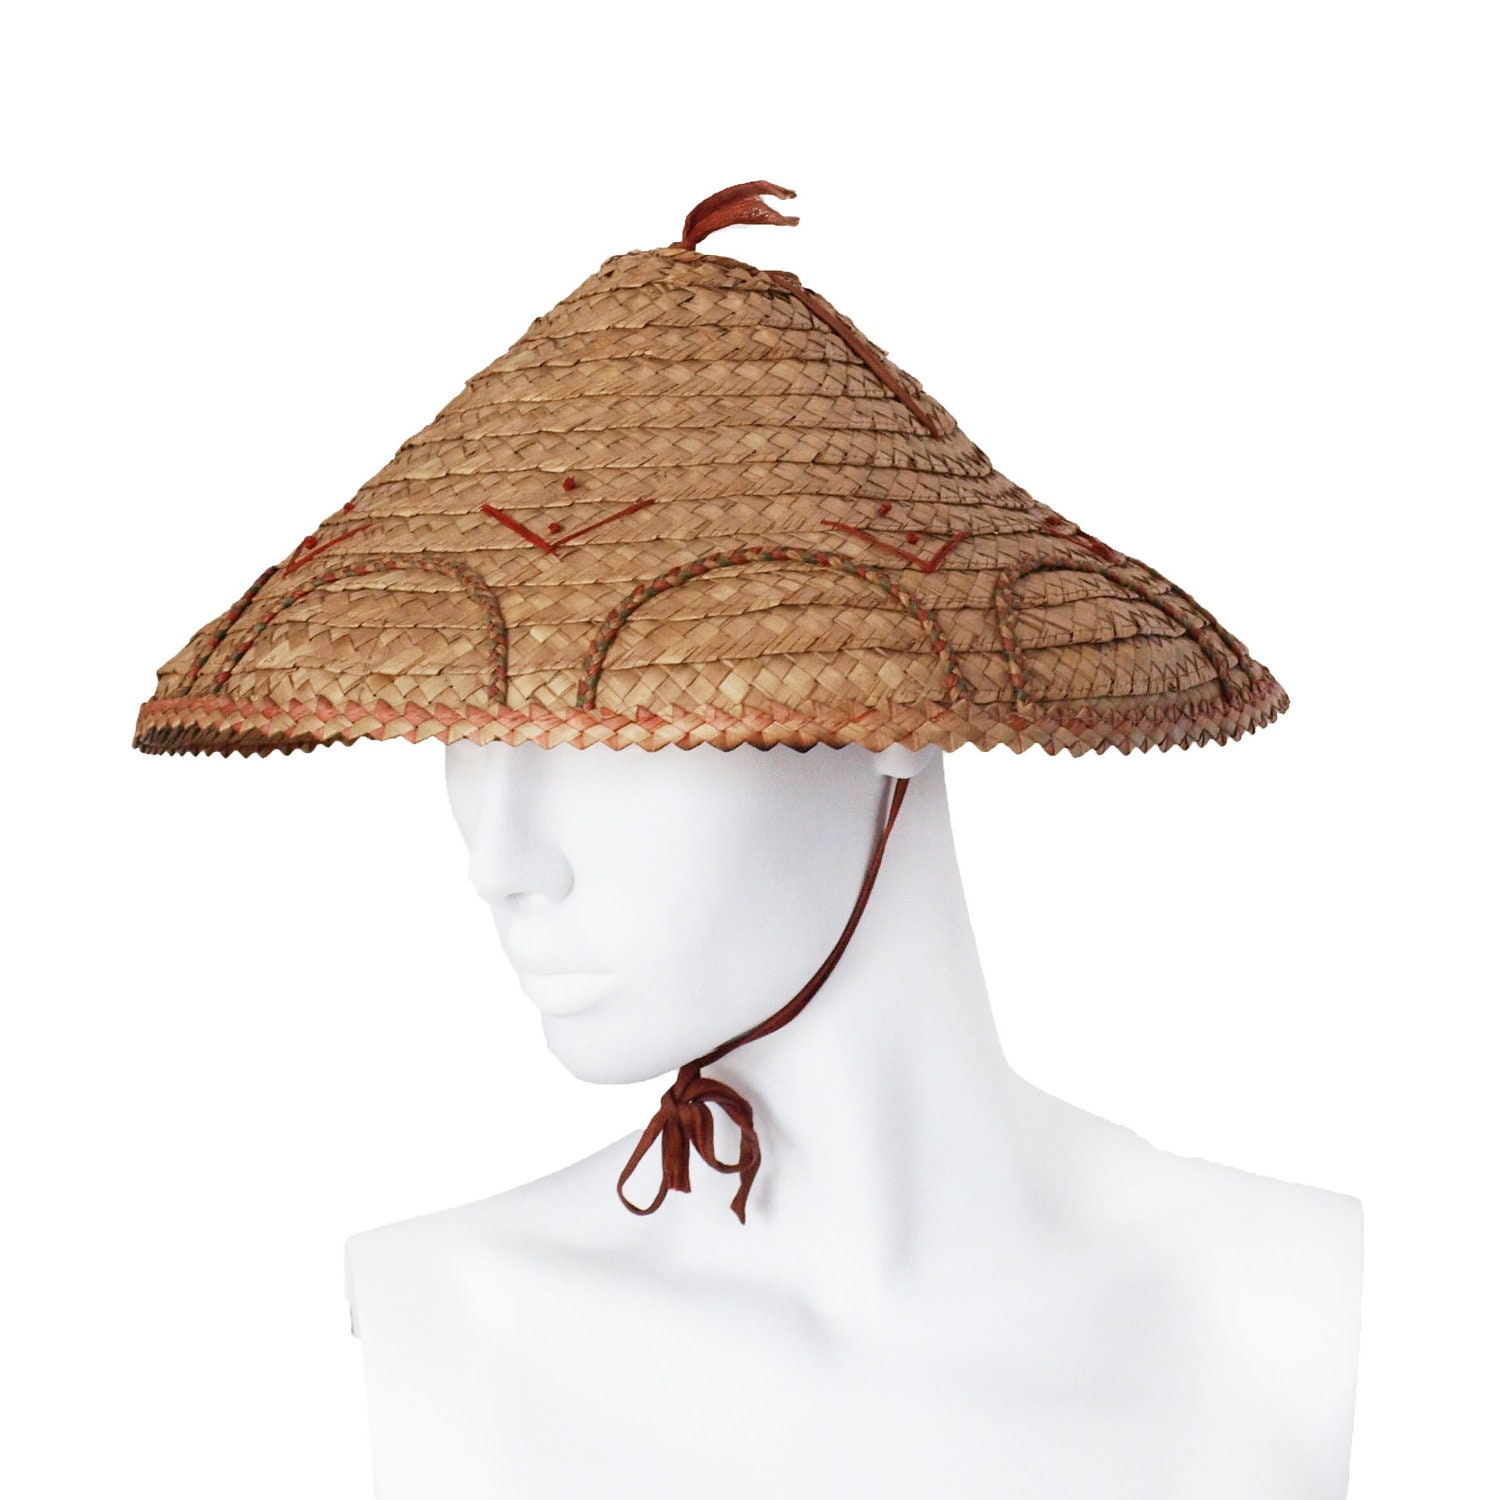 Coolie Hat: Vintage 1930s Straw Coolie Hat With Ribbon Ties And Art Deco